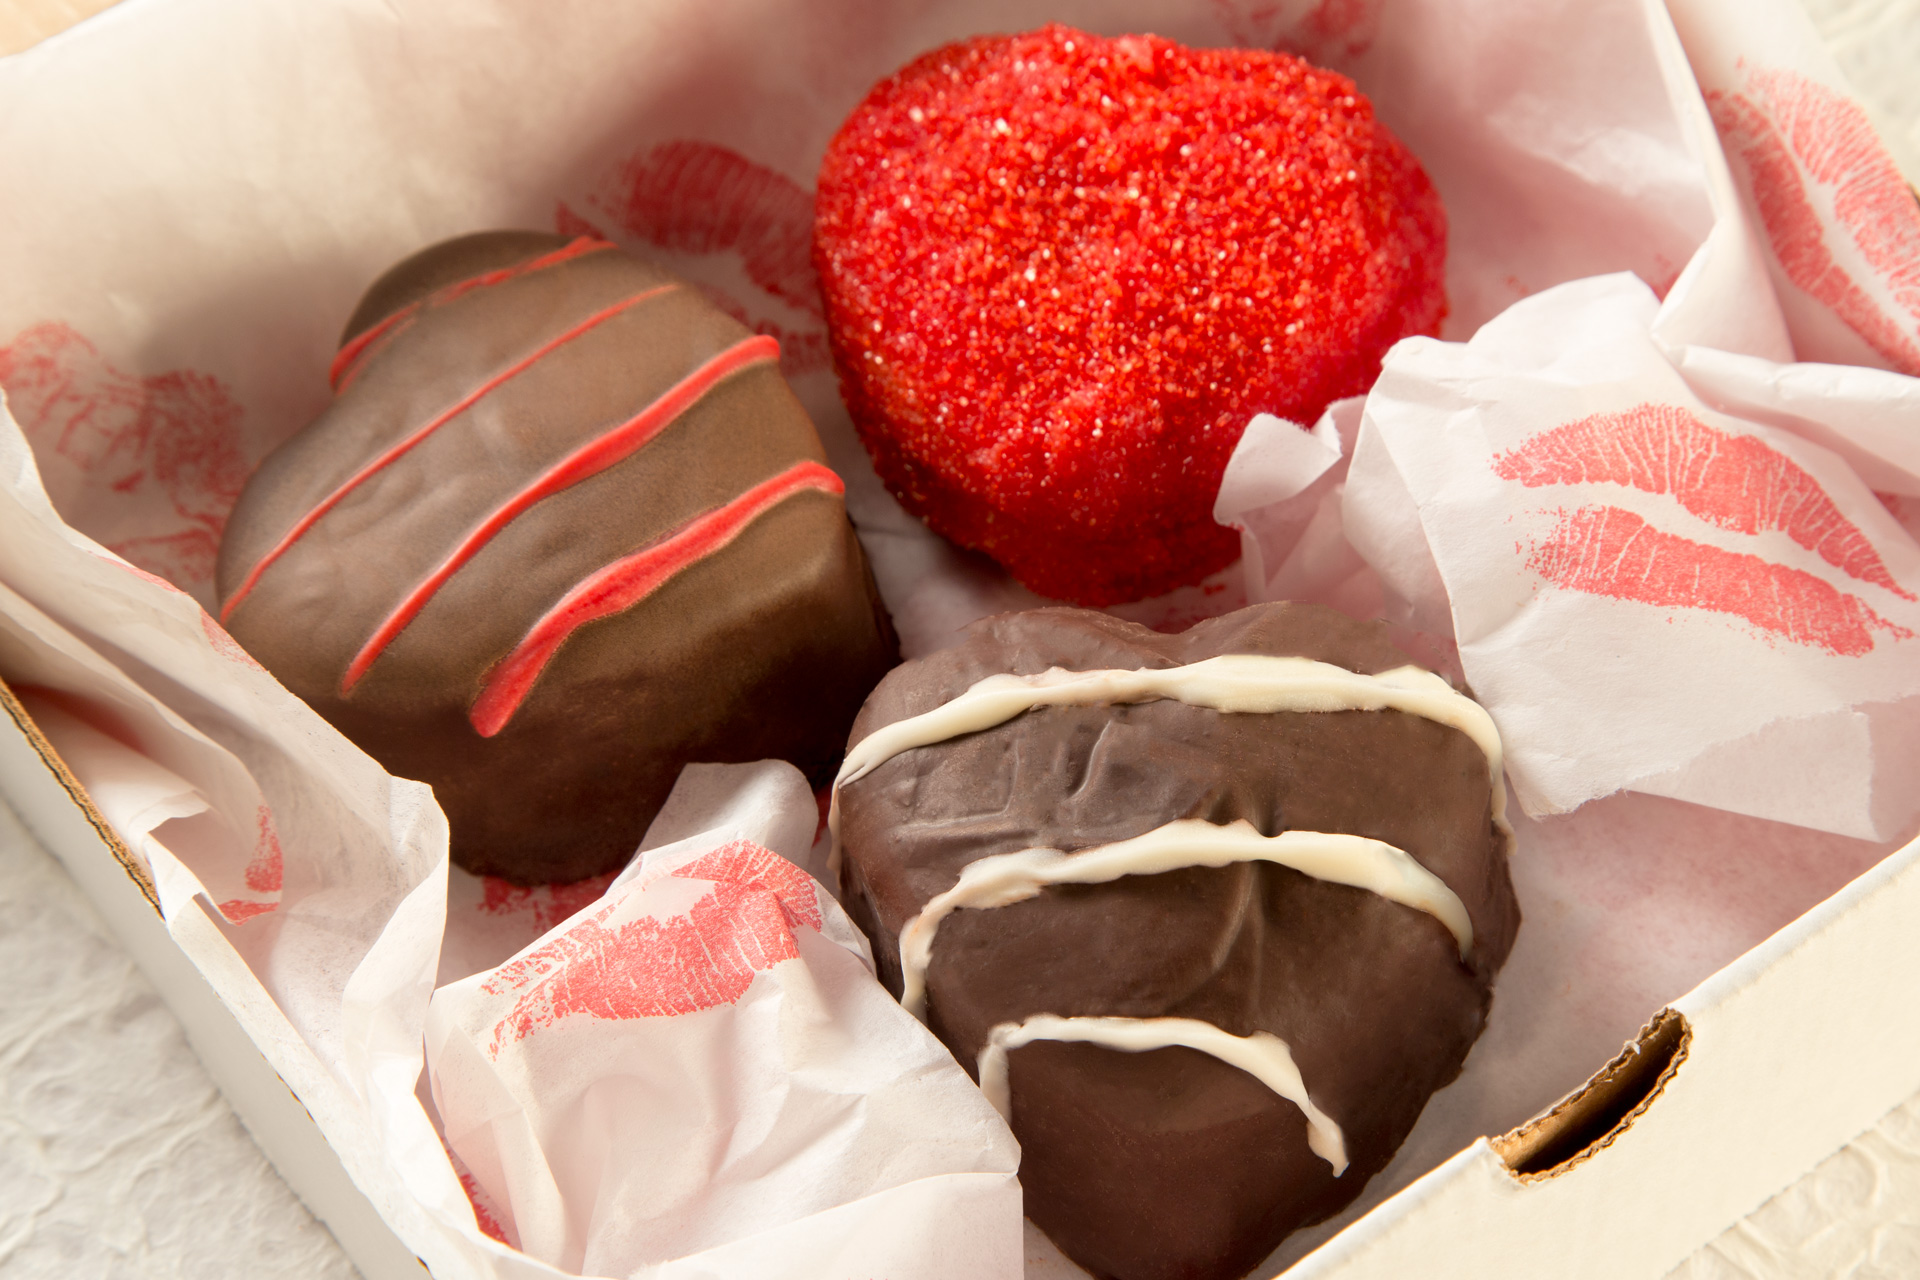 Make your own special chocolate box with these mini cakes dipped in chocolate and dressed up any way you like! Even if you aren't doing Valentine's Day on a budget, you'll make your Valentine feel special with something handmade from the heart.